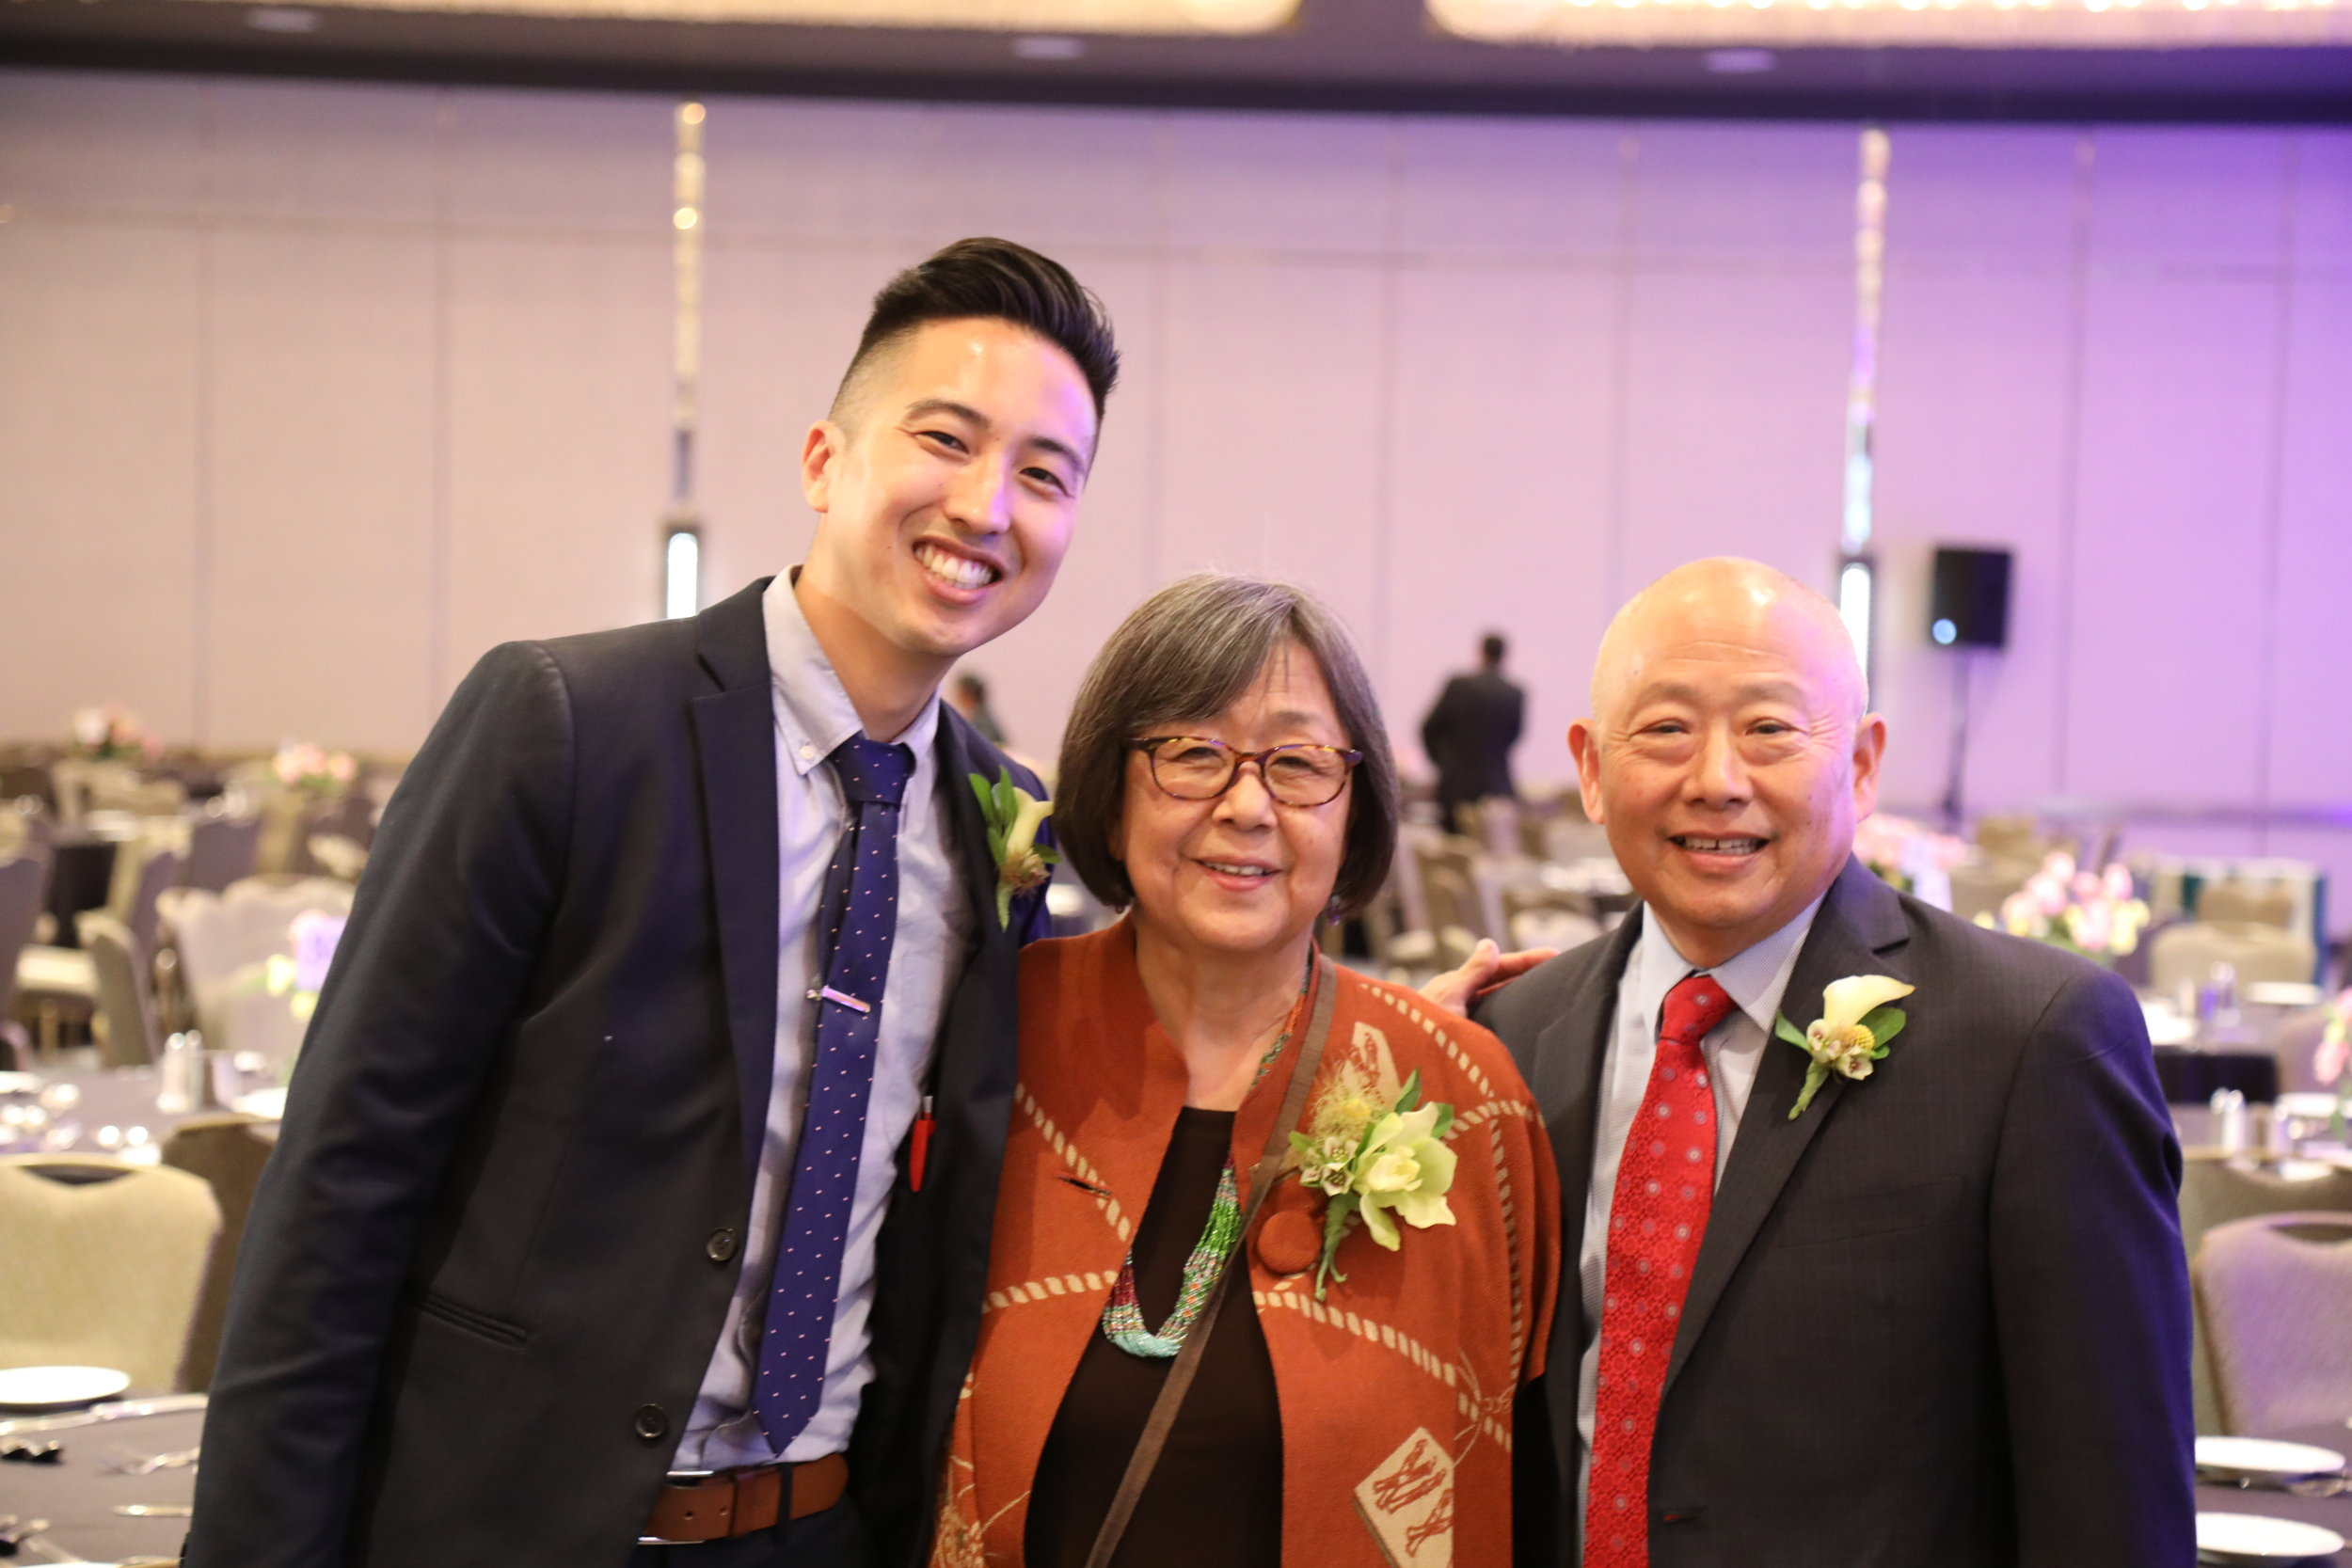 2018 Community Spirit Award recipients Craig Ishii, Kathy Masaoka, and Alan Miyatake.